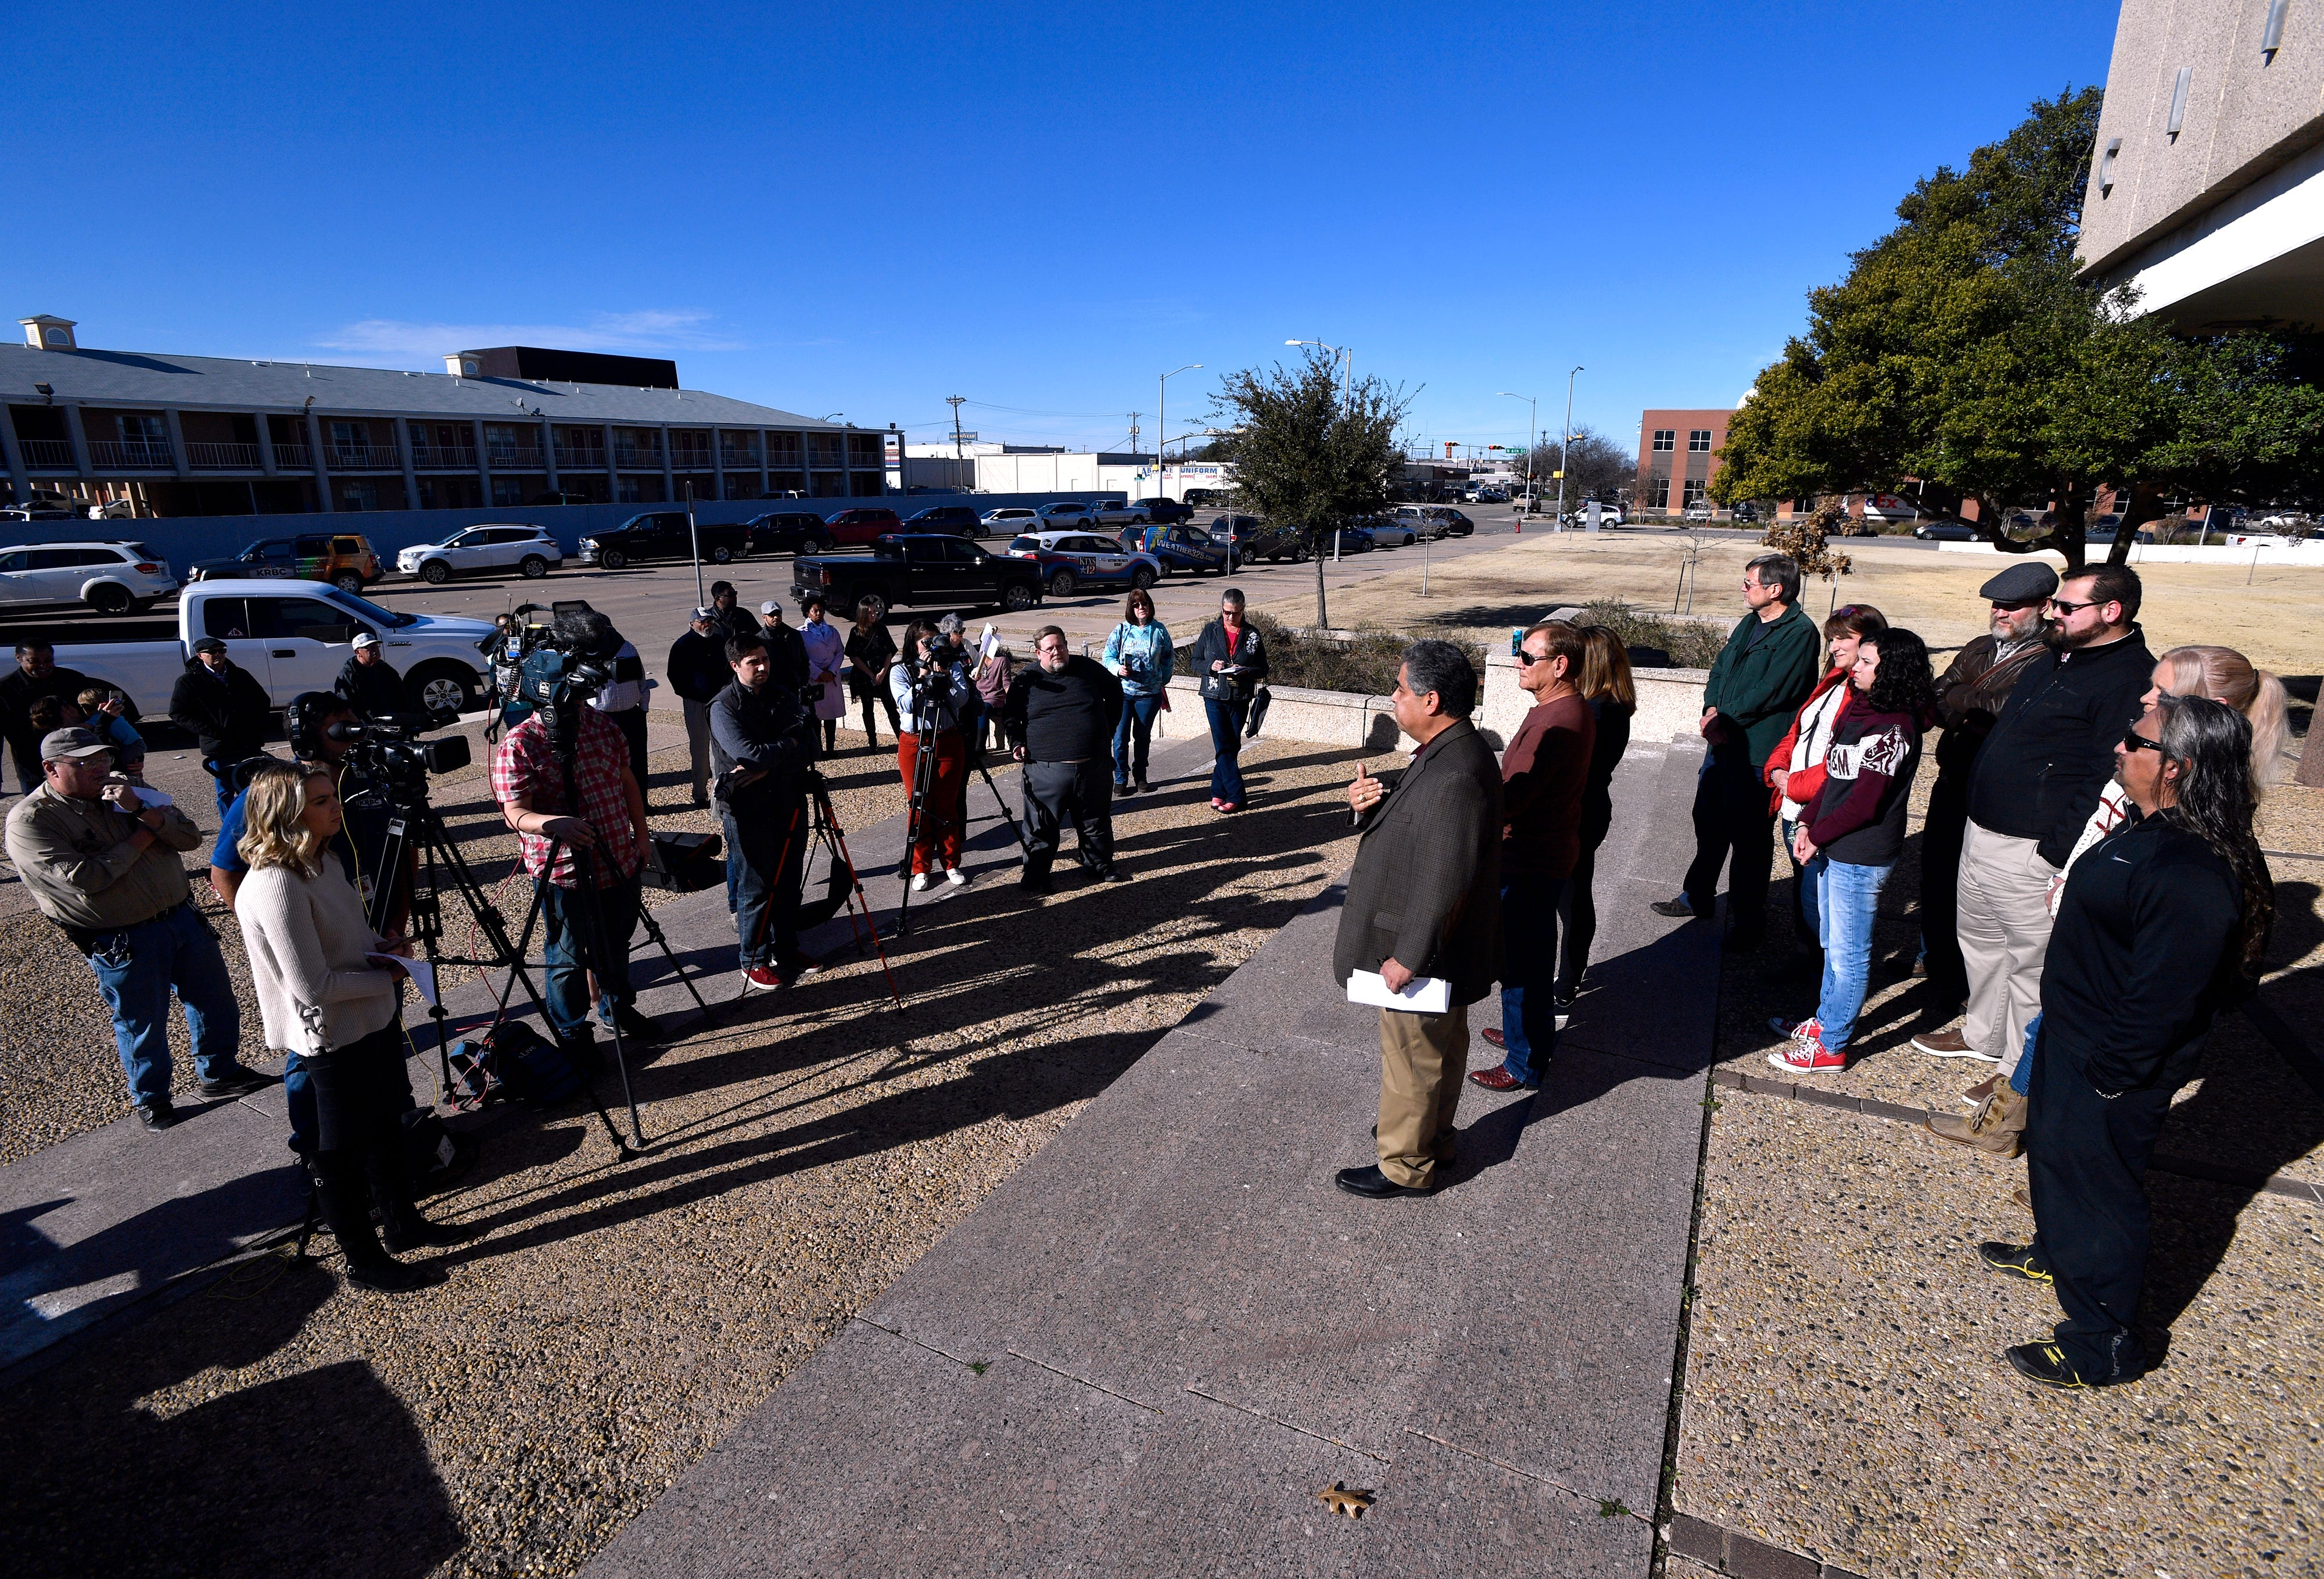 Abilene Independent School District board member Samuel Garcia others speak to reporters Wednesday regarding city councilman Kyle McAlister's social media statements. The group stood in front of Abilene City Hall to protest McAlister's past postings that the group labeled as racist.